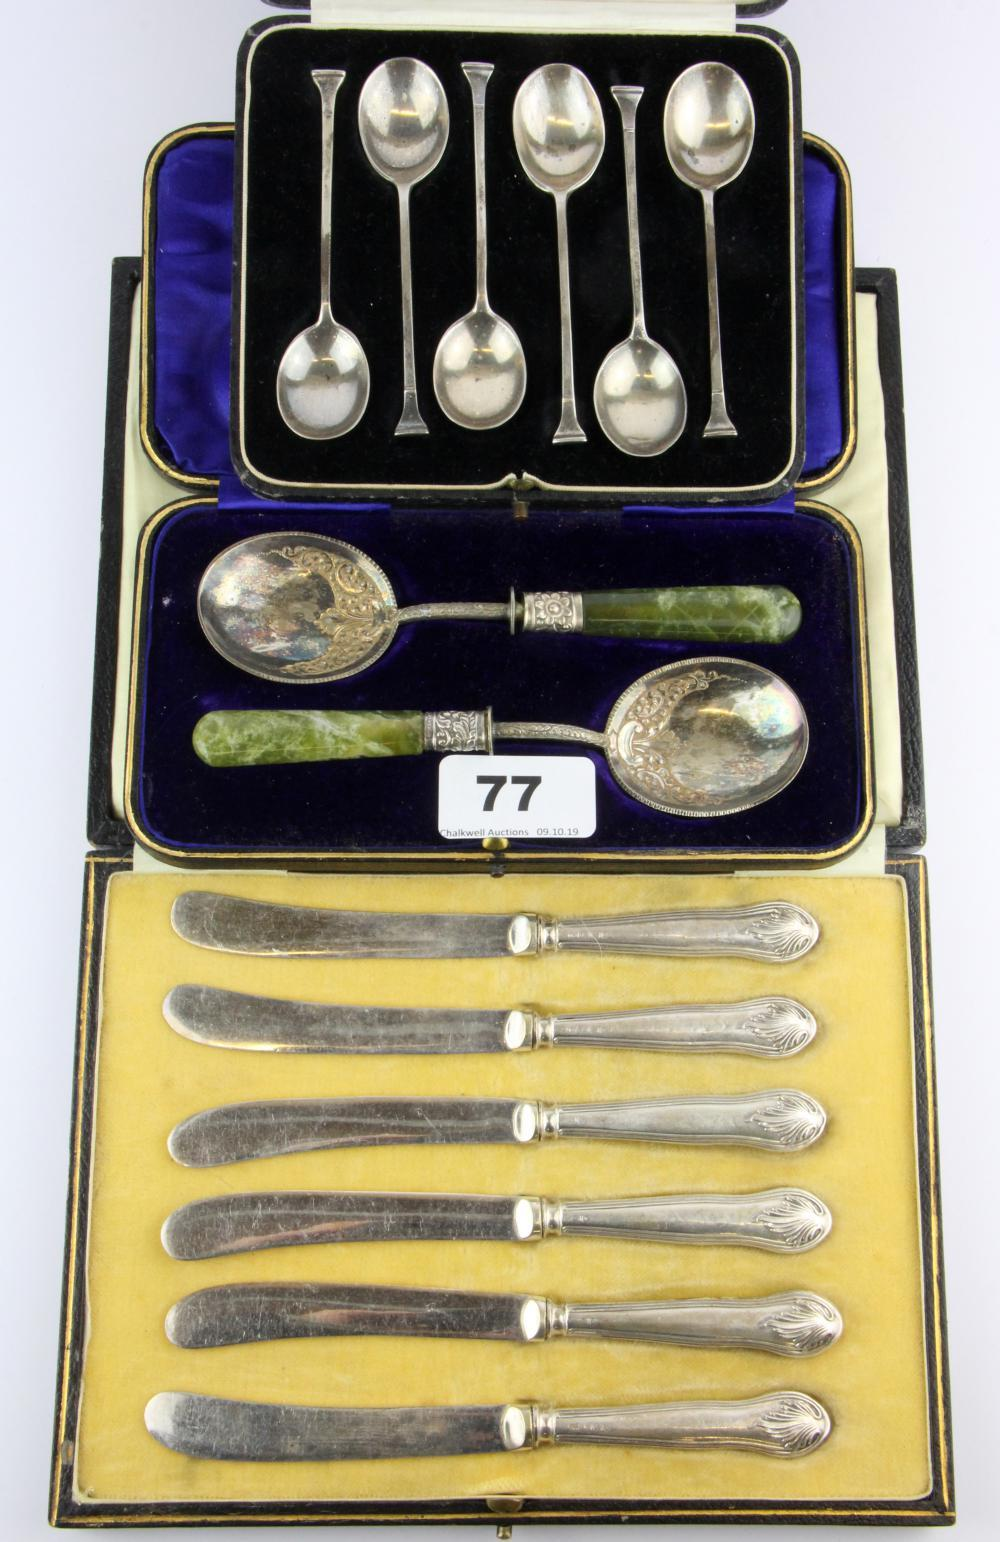 A cased set of six hallmarked silver coffee spoons, six silver handled butter knives and a pair of stone handled serving spoons.